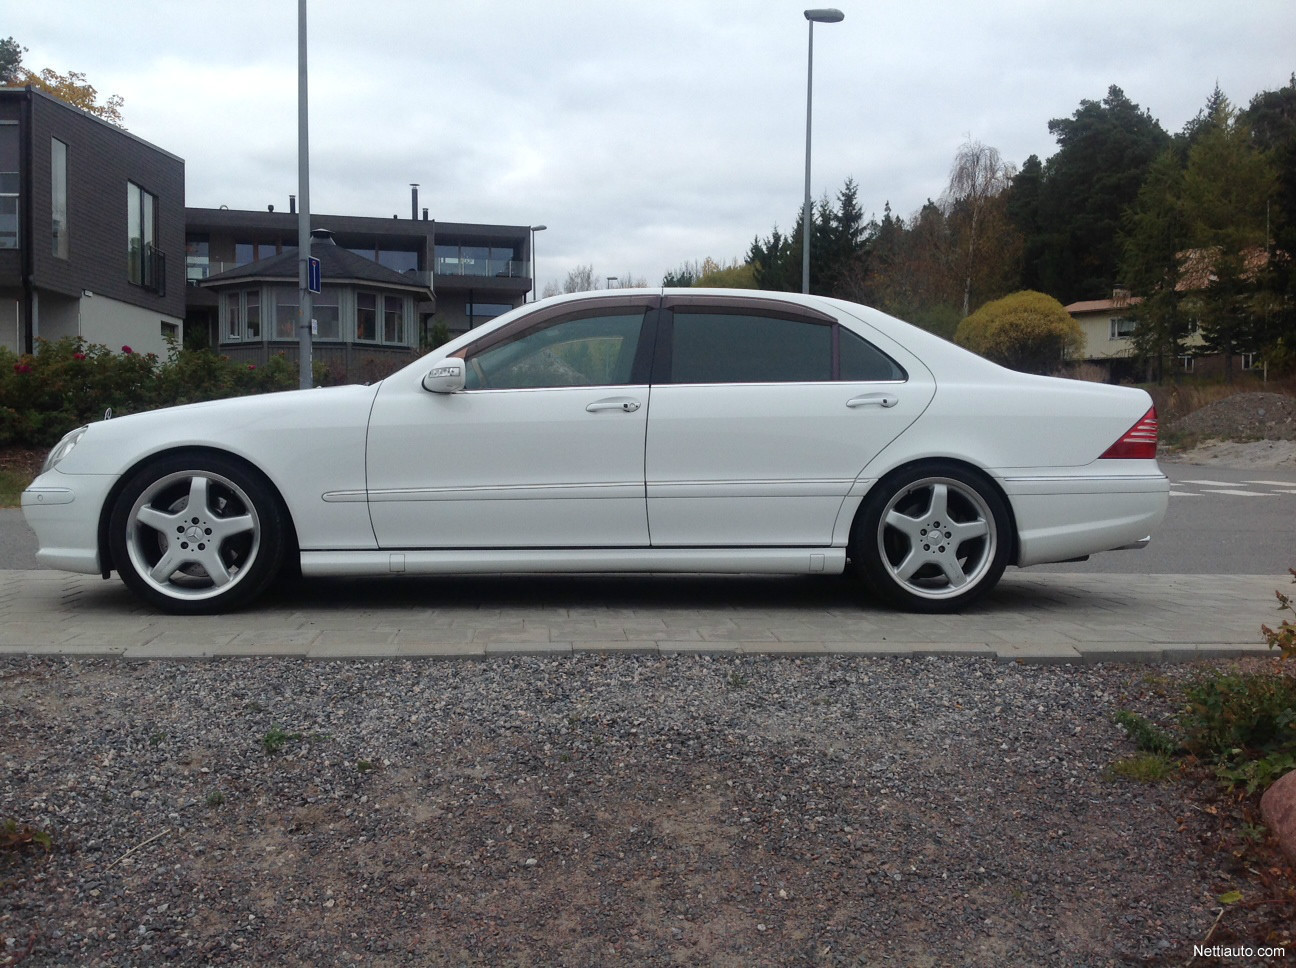 Mercedes benz s 55 amg lang sedan 2000 used vehicle for Mercedes benz s 55